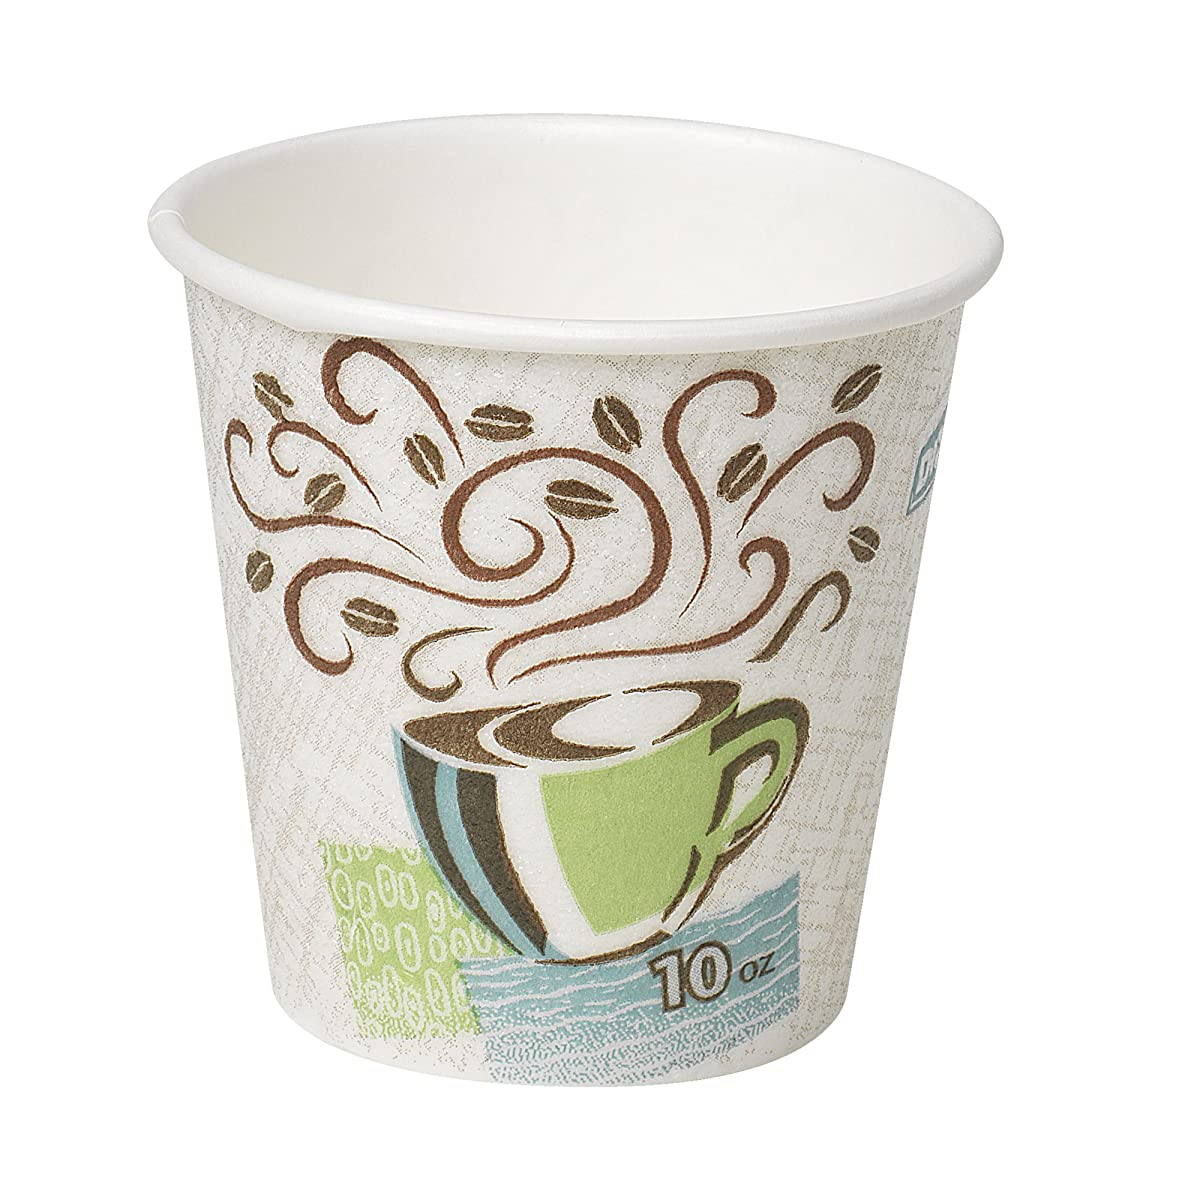 Dixie PerfecTouch 10 oz. Insulated Paper Hot Coffee Cup by GP PRO (Georgia-Pacific), Coffee Haze, 5310DX, 500 Count (25 Cups Per Sleeve, 20 Sleeves Per Case)